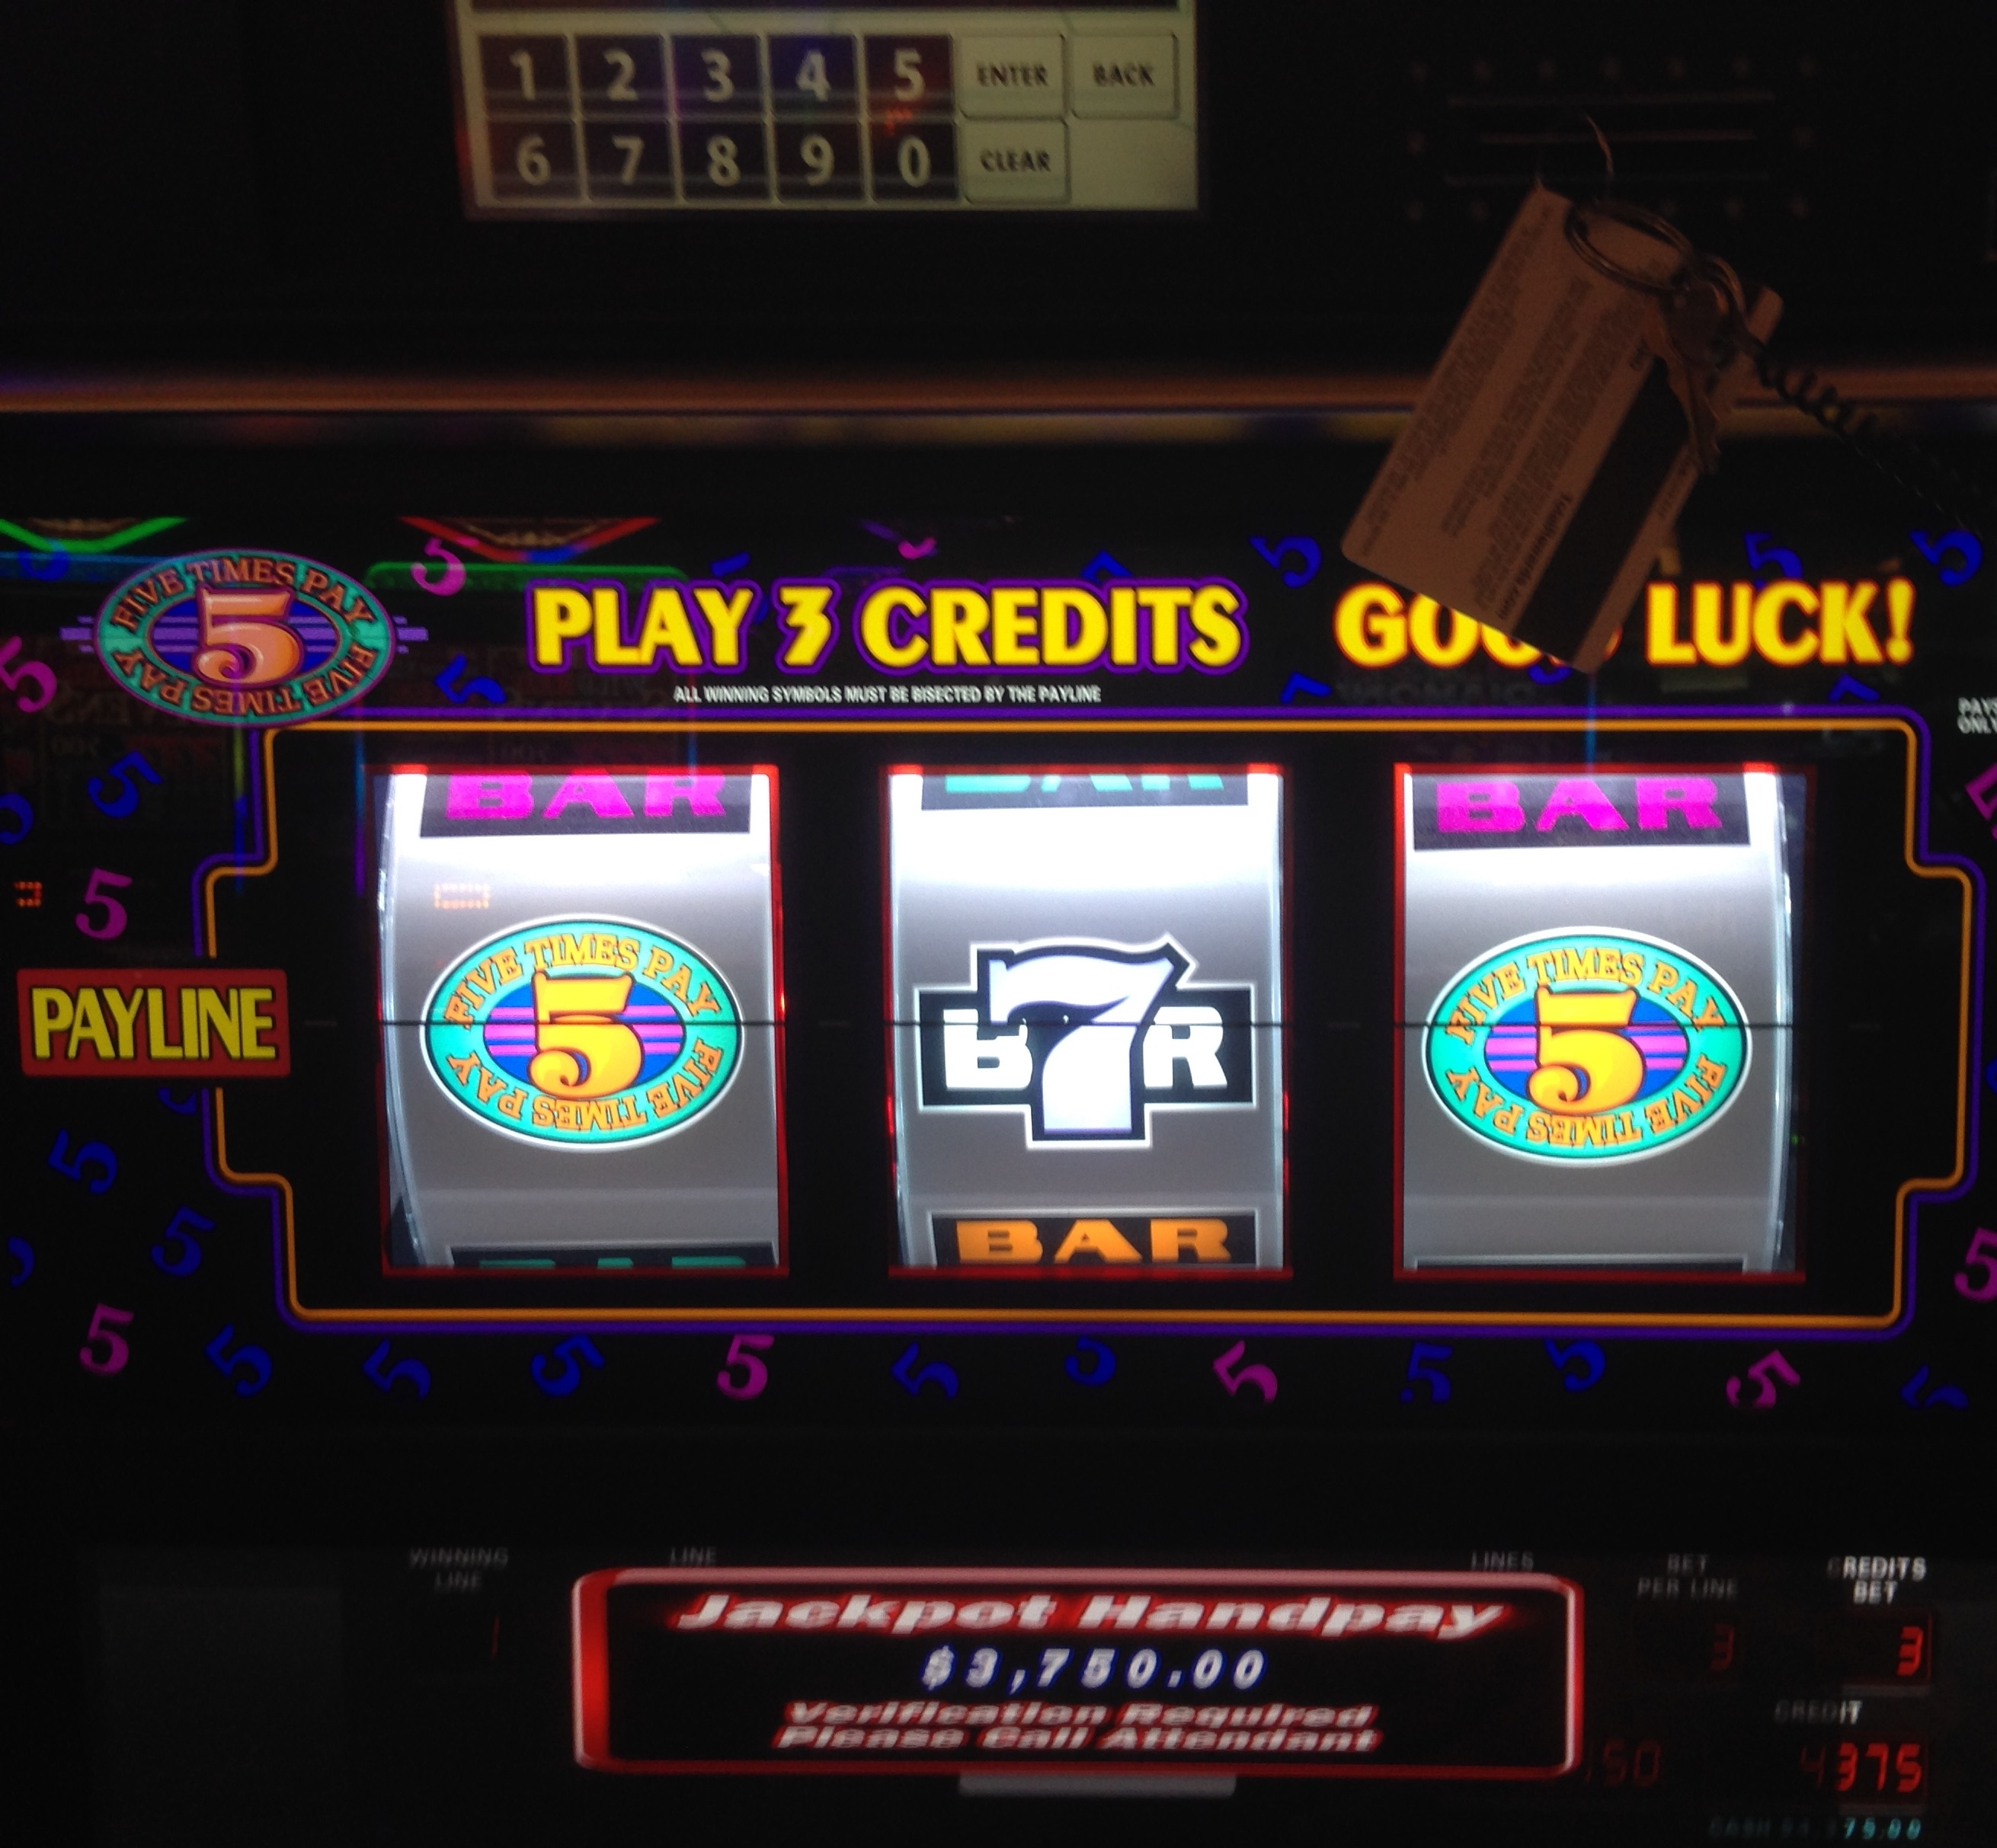 Second taxable jackpot of that 1st night ($3,750).